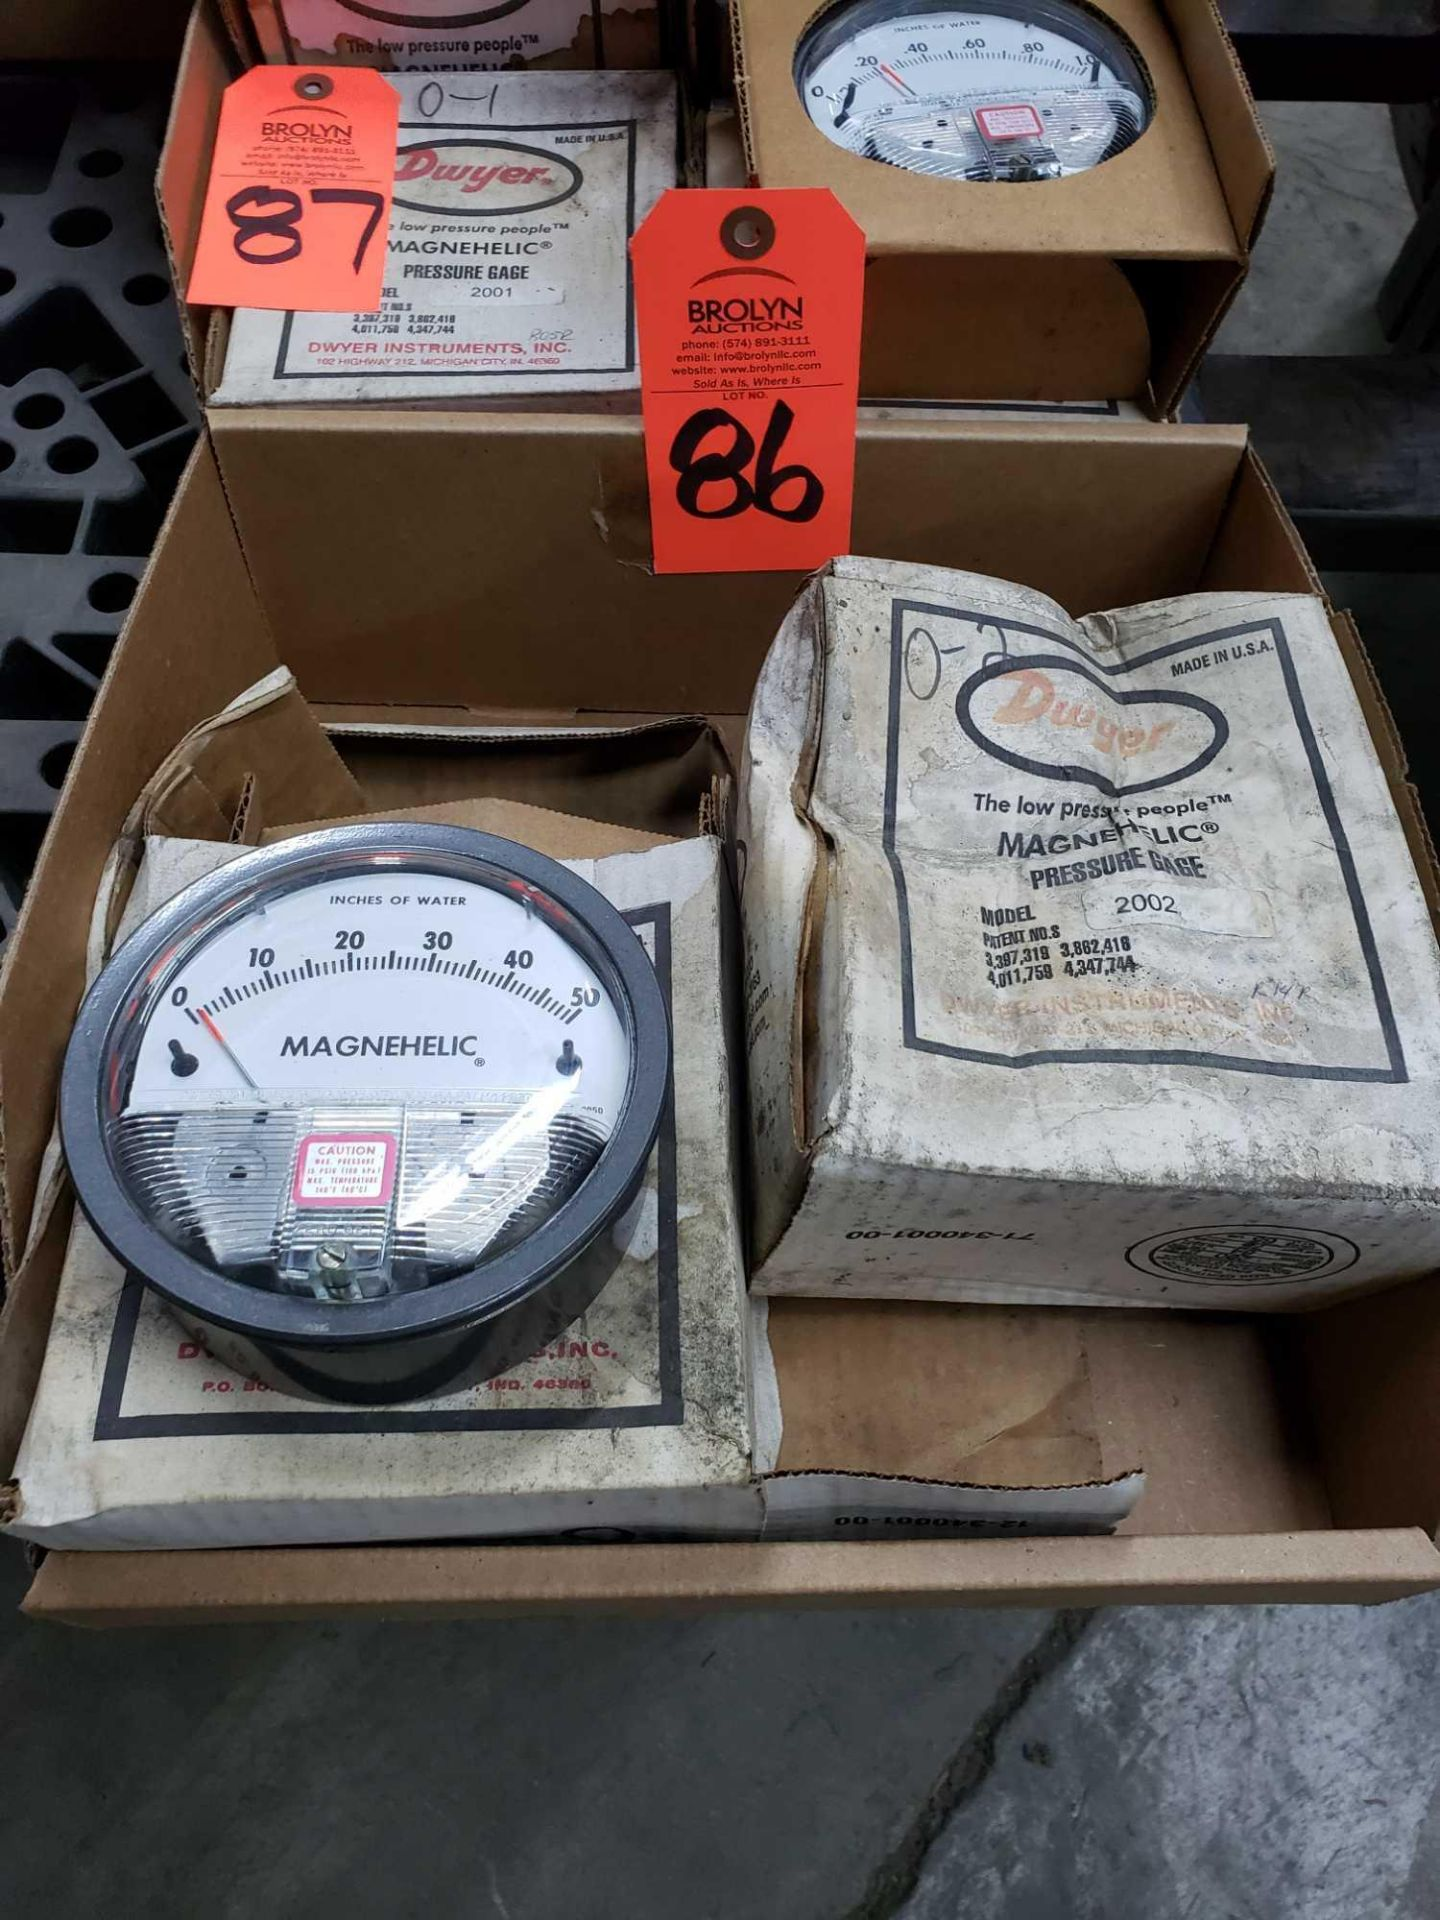 Lot 86 - Qty 2 - Dwyer Magnehelic model 2002 pressure gauges. New. Boxes show wear.